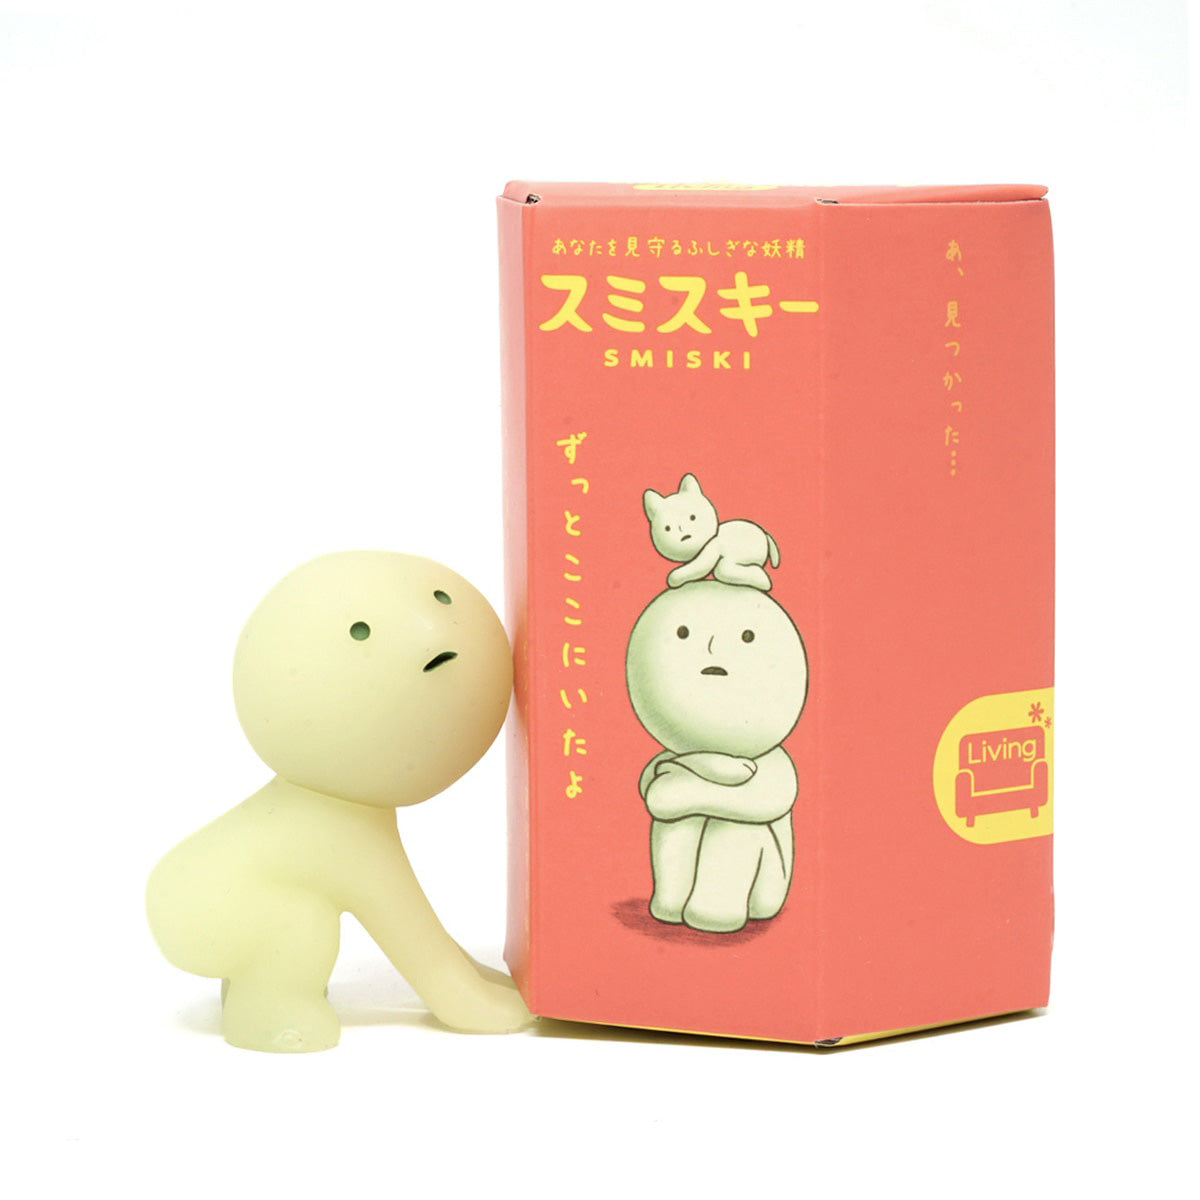 Smiski Living Series Glow in the Dark Blind Box